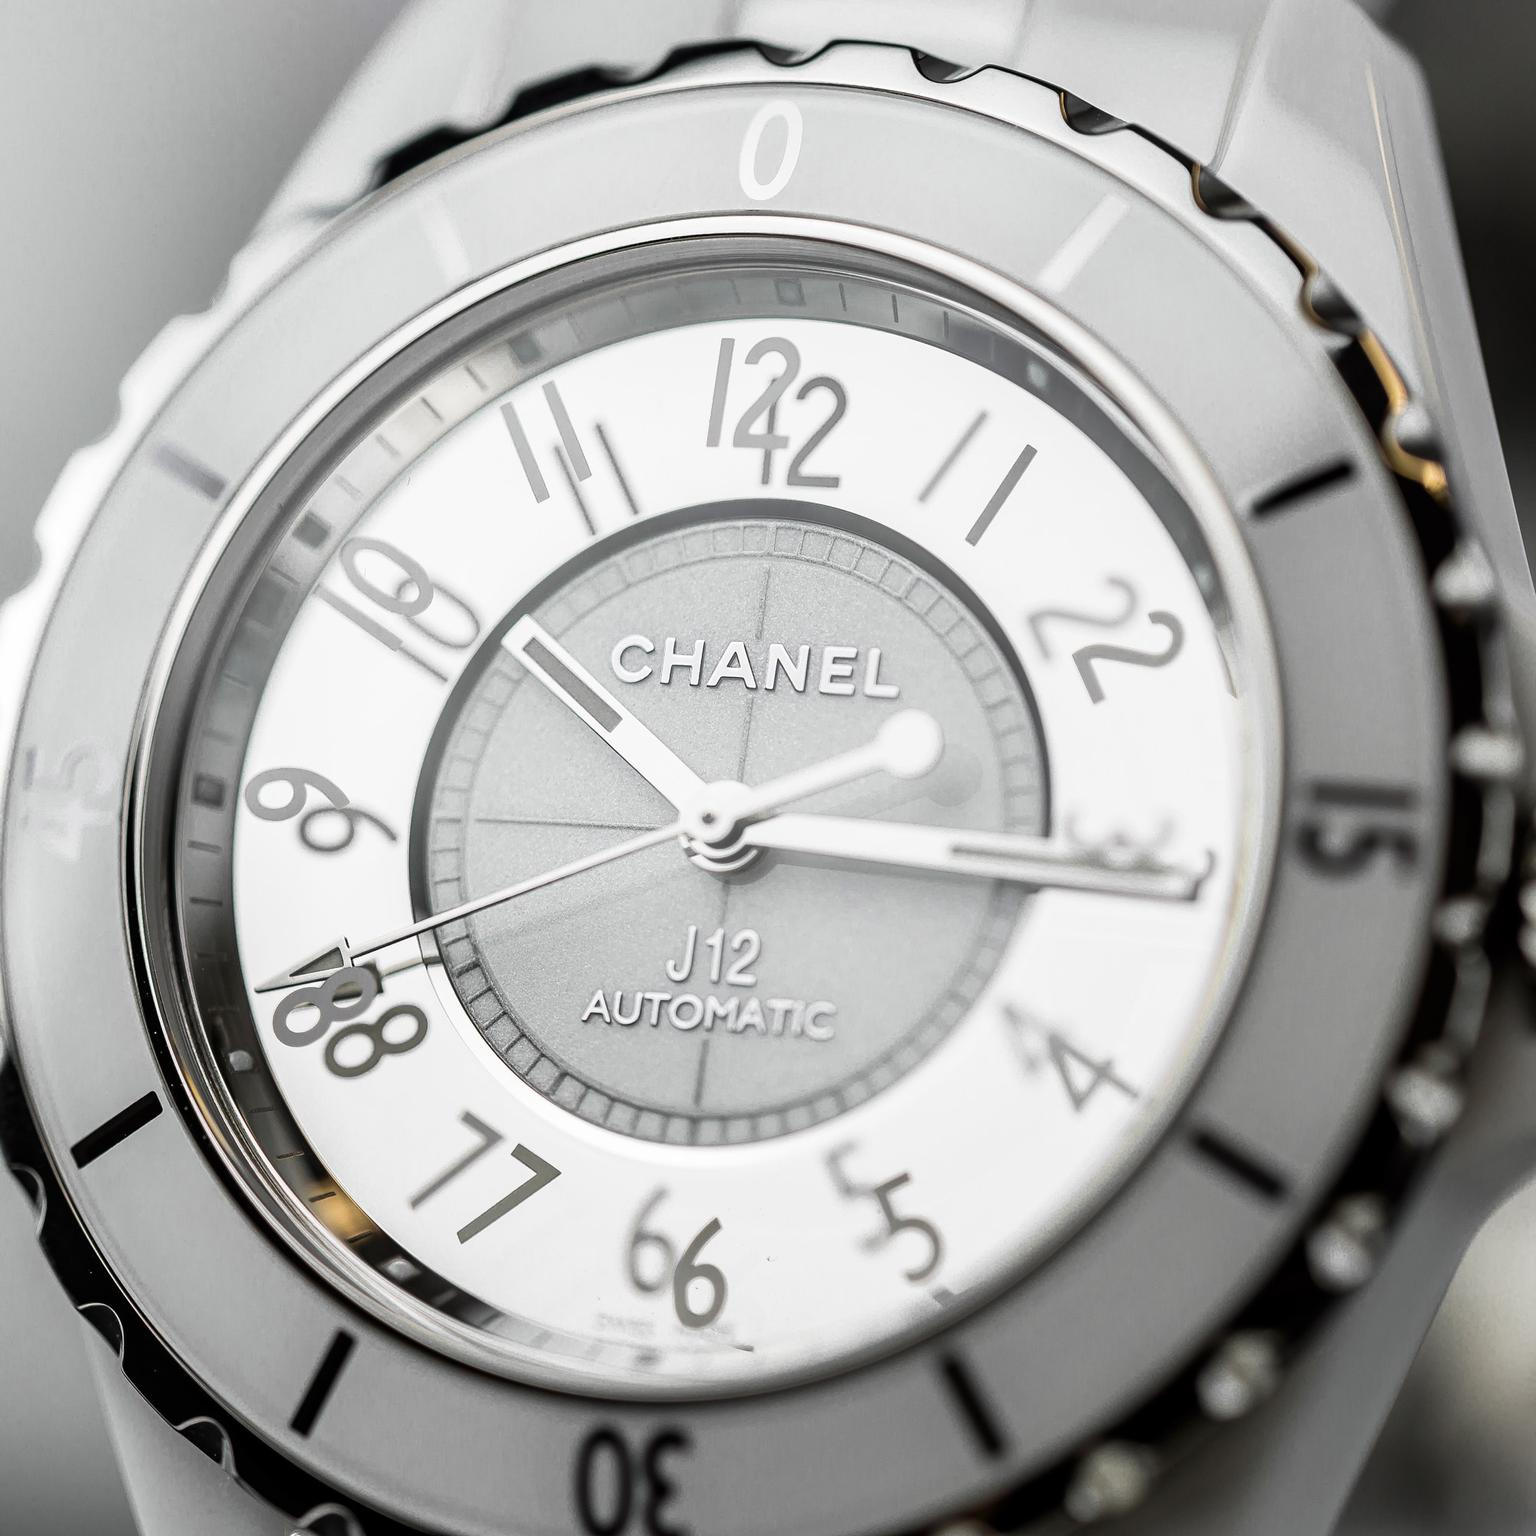 Chanel J12 mirrored watch